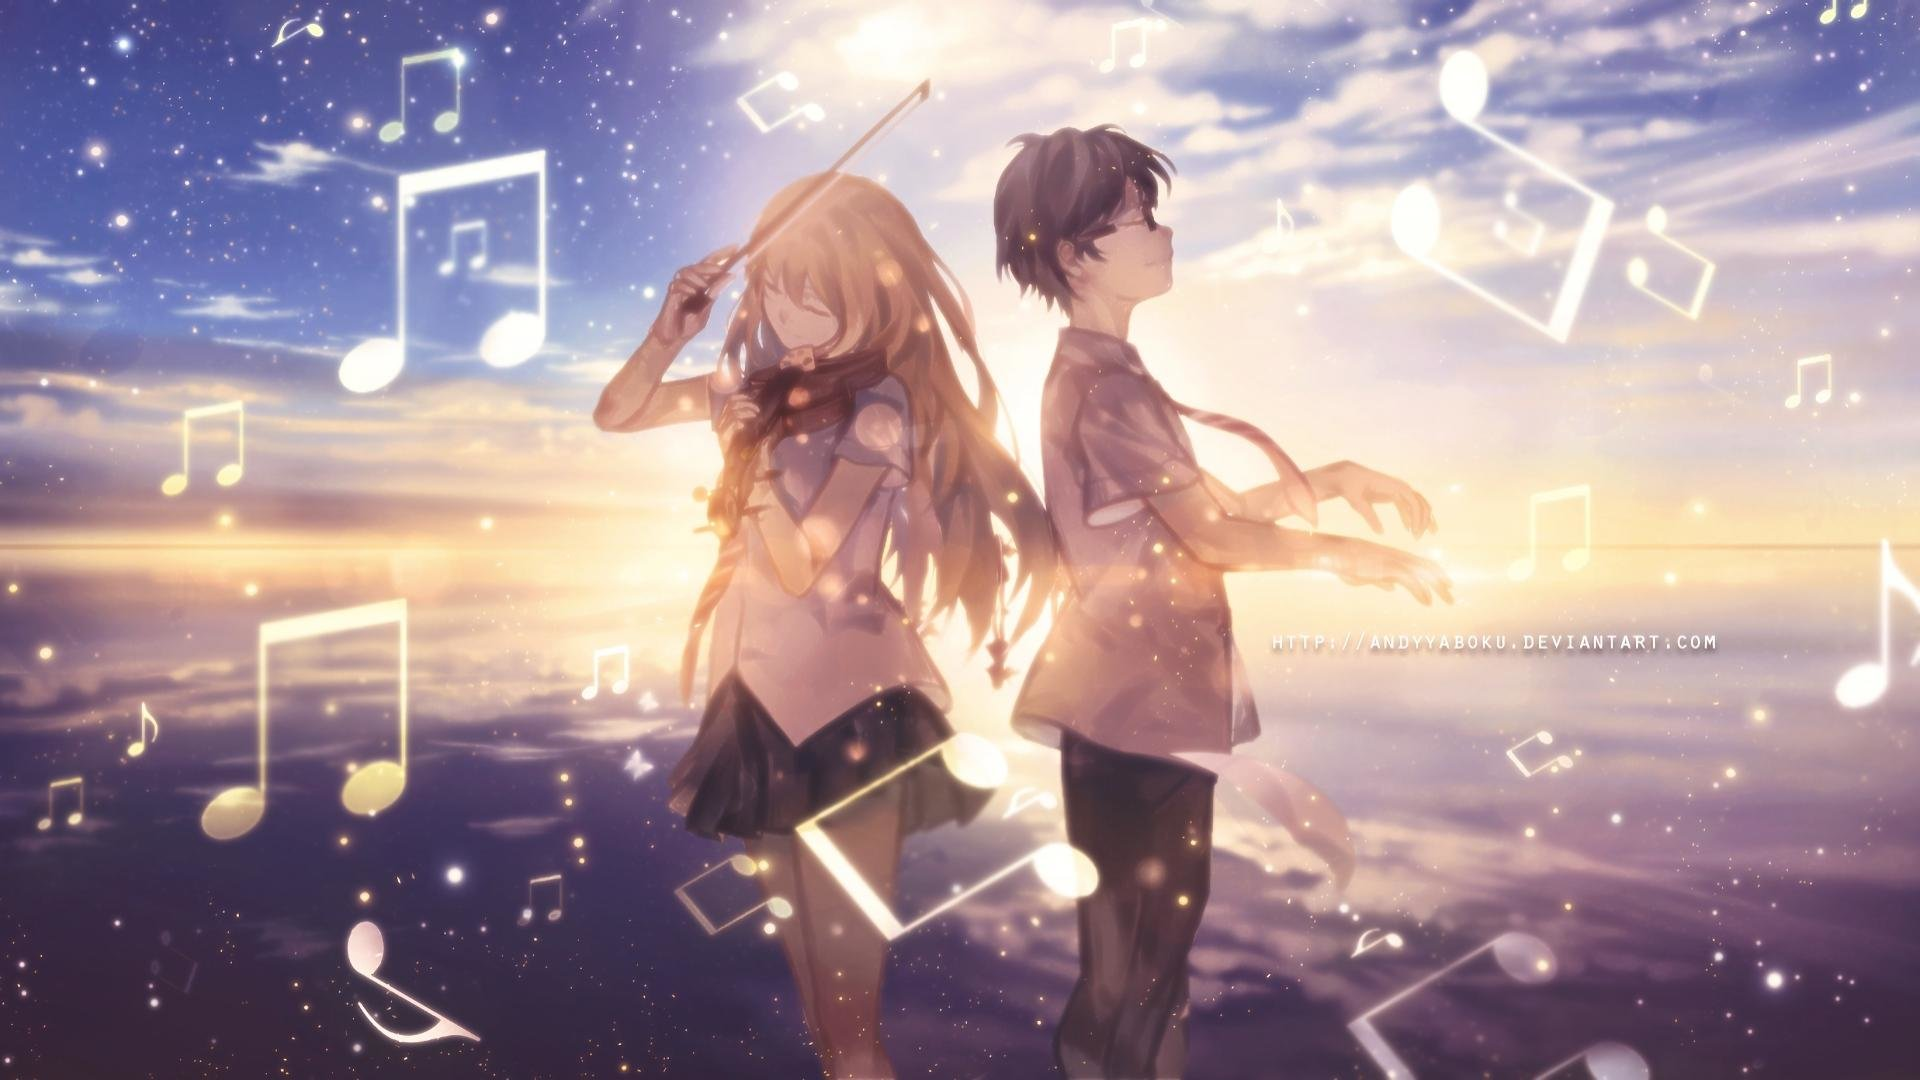 Zerochan anime image gallery for shigatsu wa kimi no uso (your lie in april), wallpaper. Your Lie In April wallpapers 1920x1080 Full HD (1080p ...